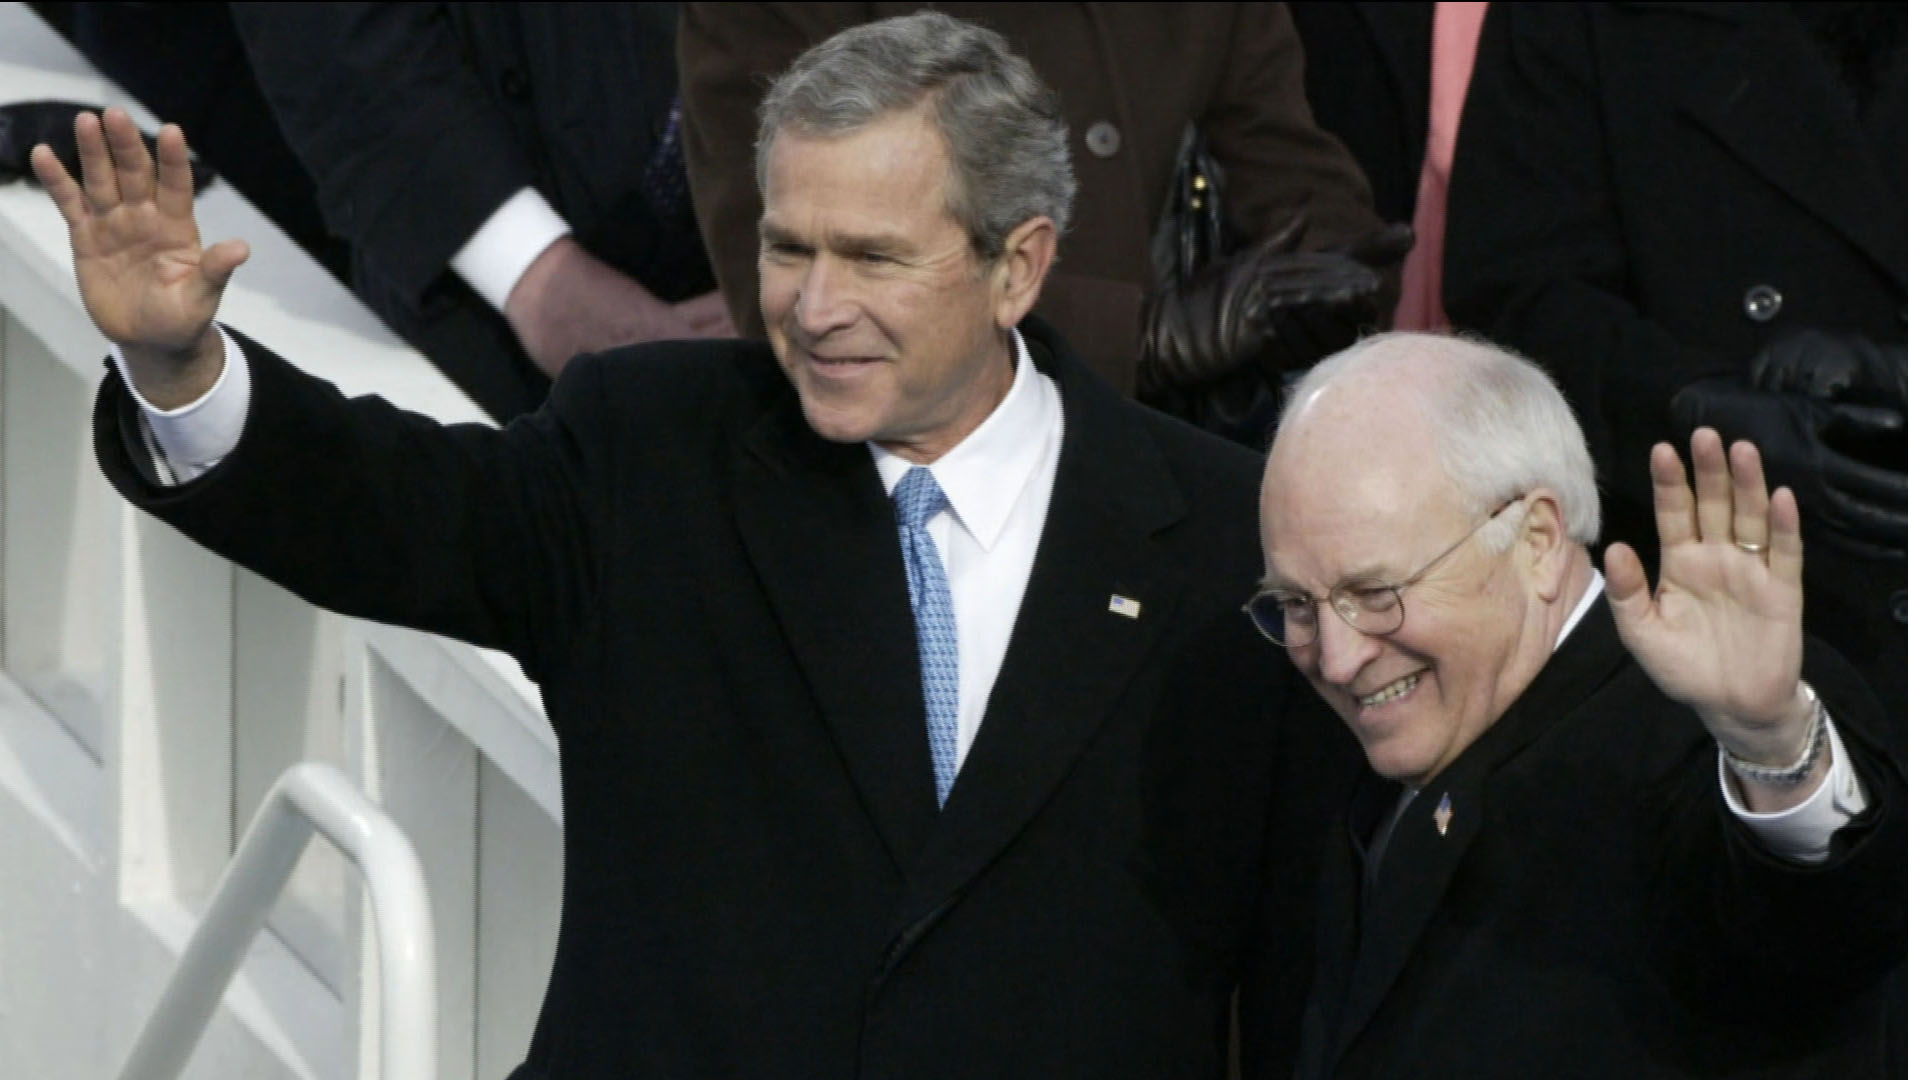 Bush and Cheney: What went wrong?